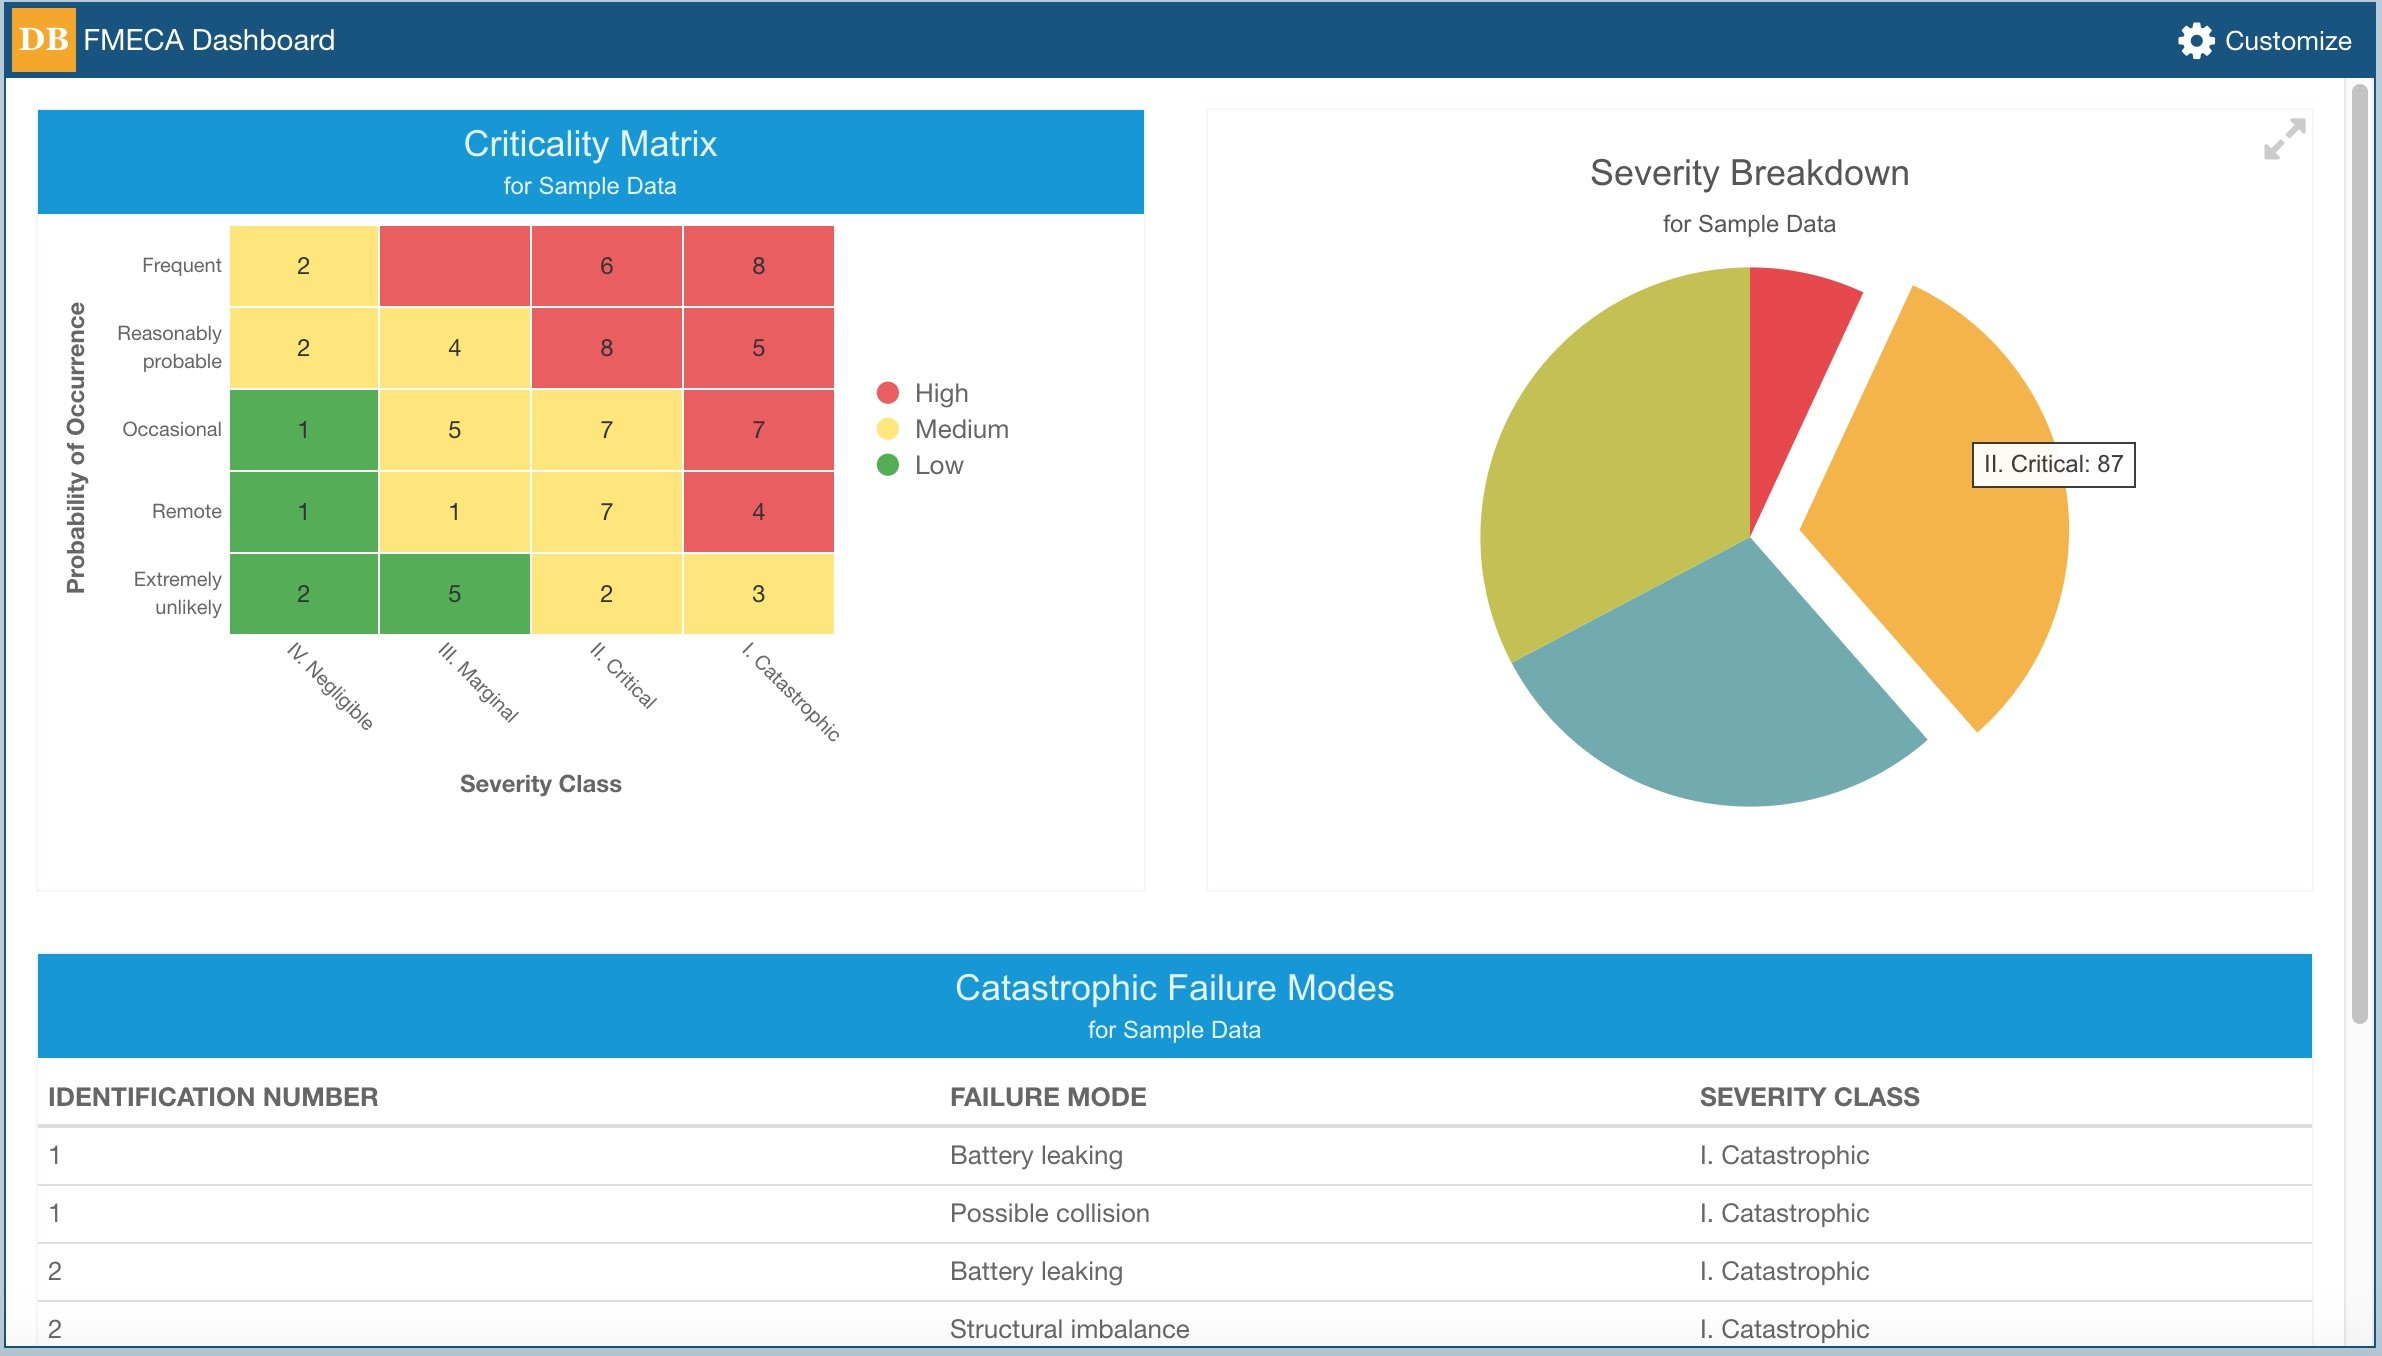 Relyence FMECA Dashboard Screenshot